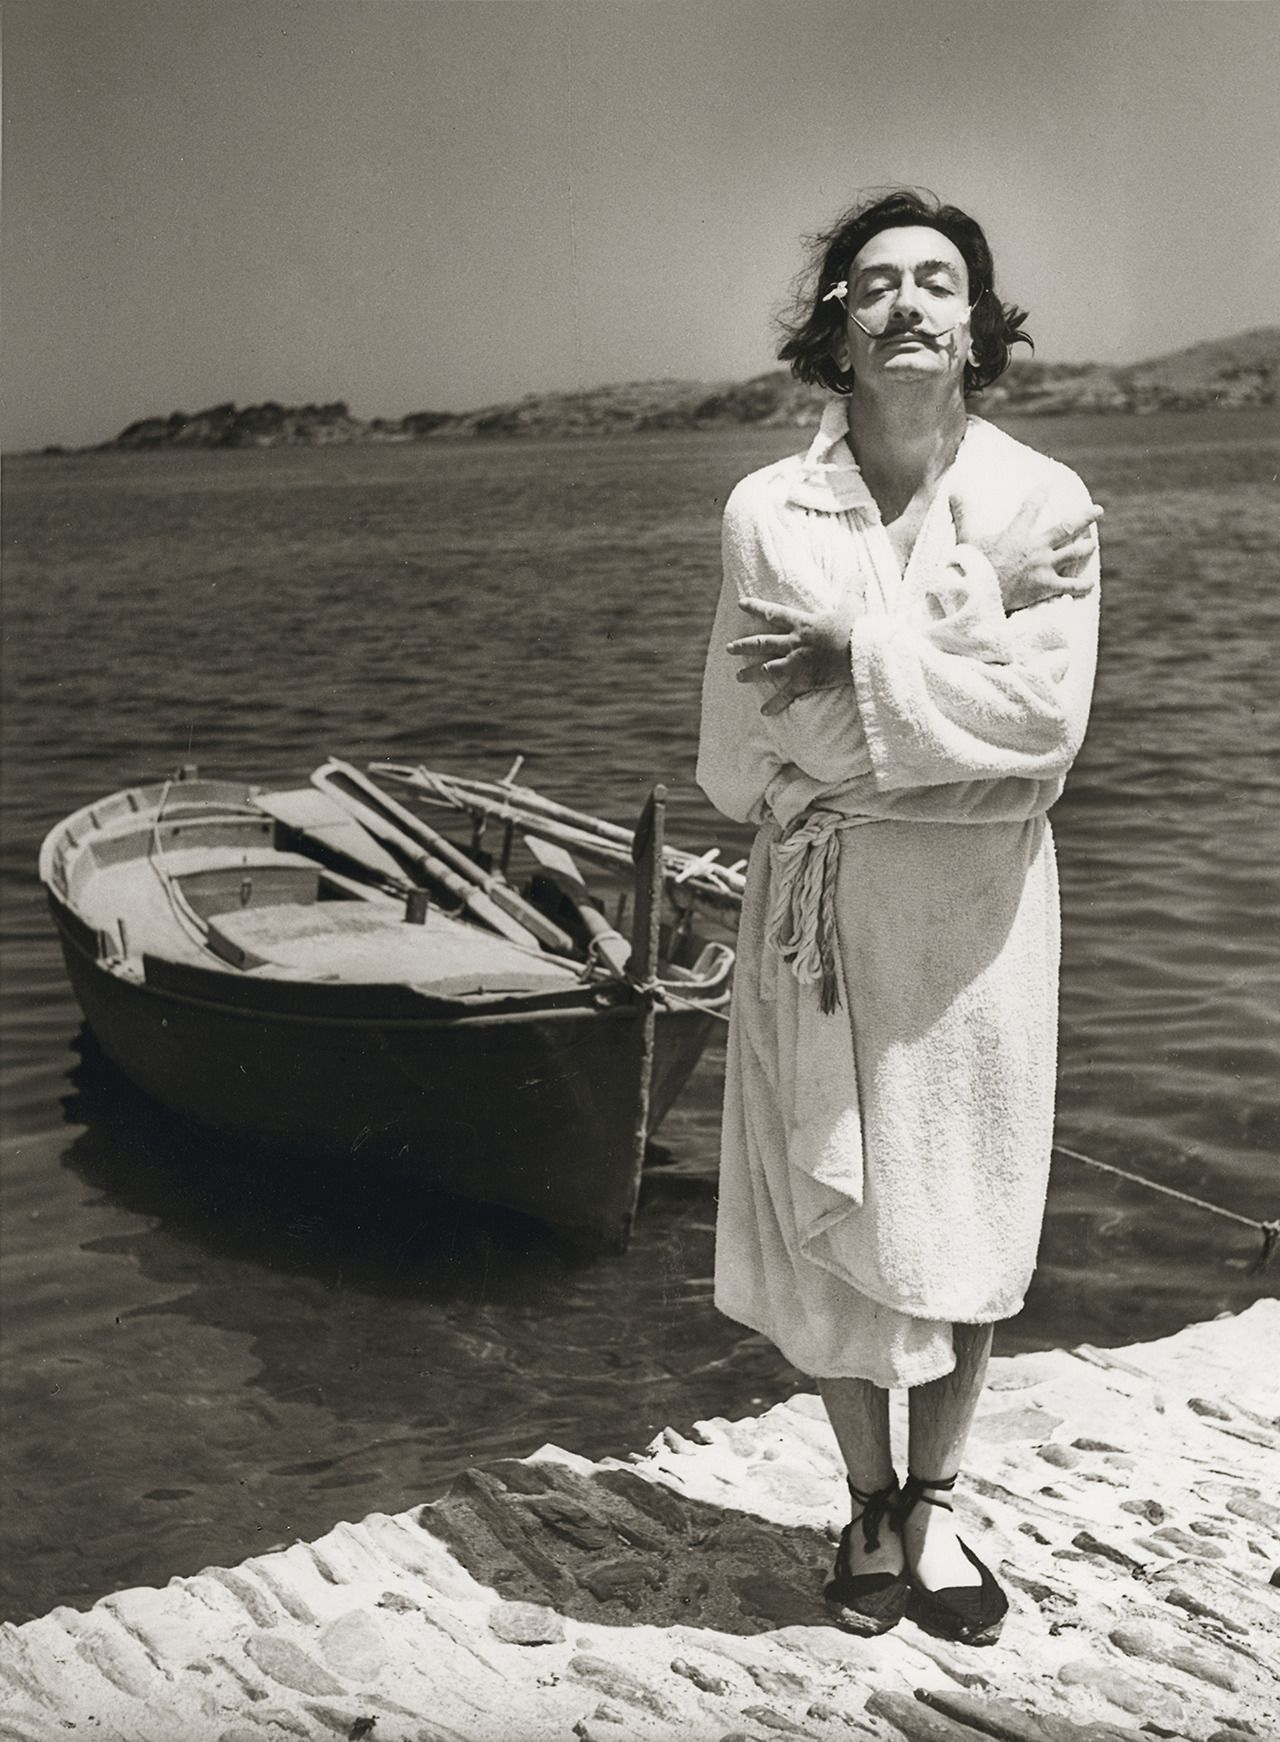 Memo from Salvador Dalí Re: Espadrilles — One Who Dresses